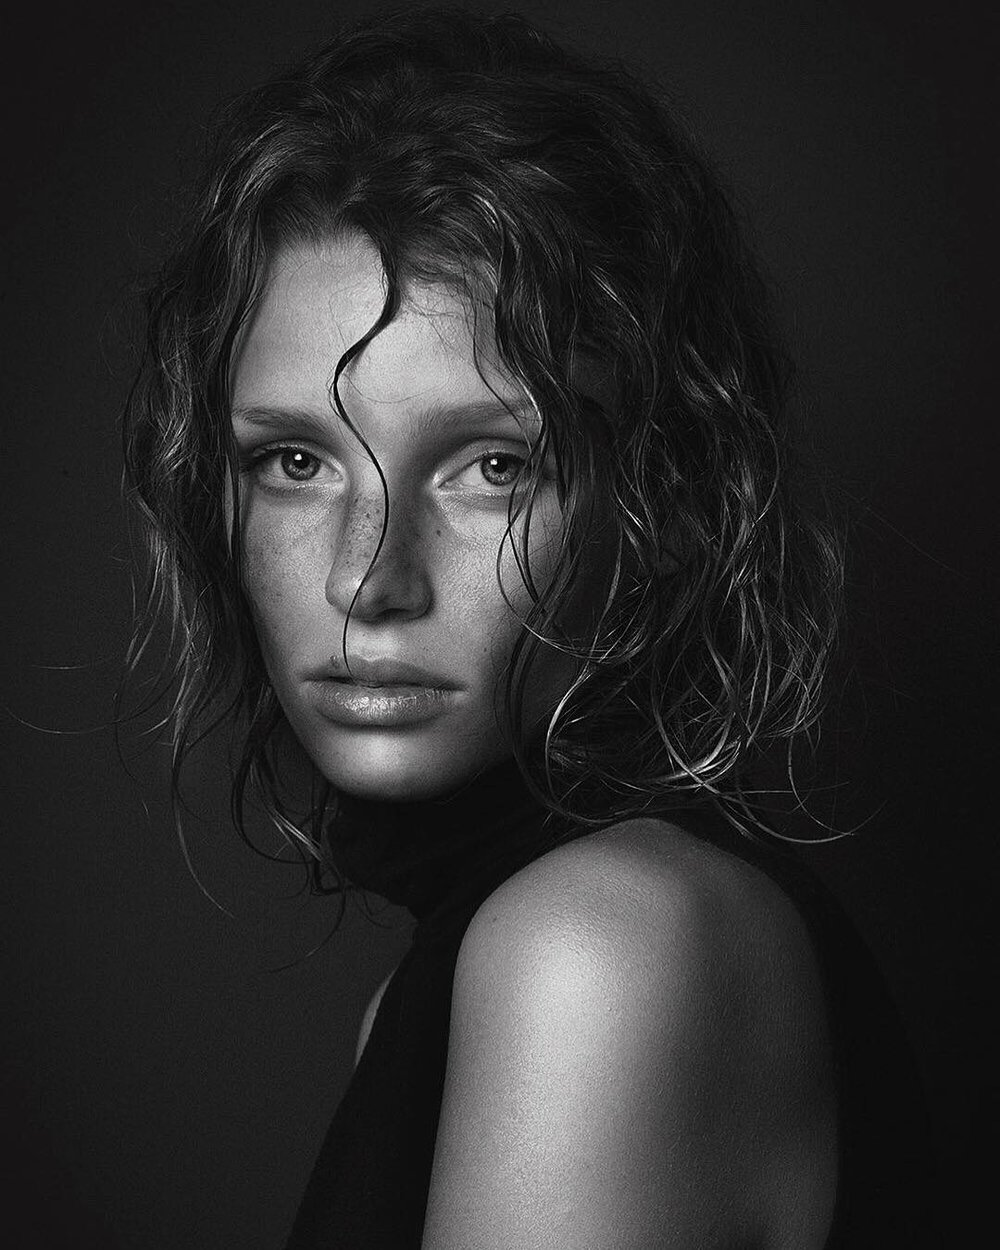 beautiful_black_and_white_portrait_photography_26.jpg